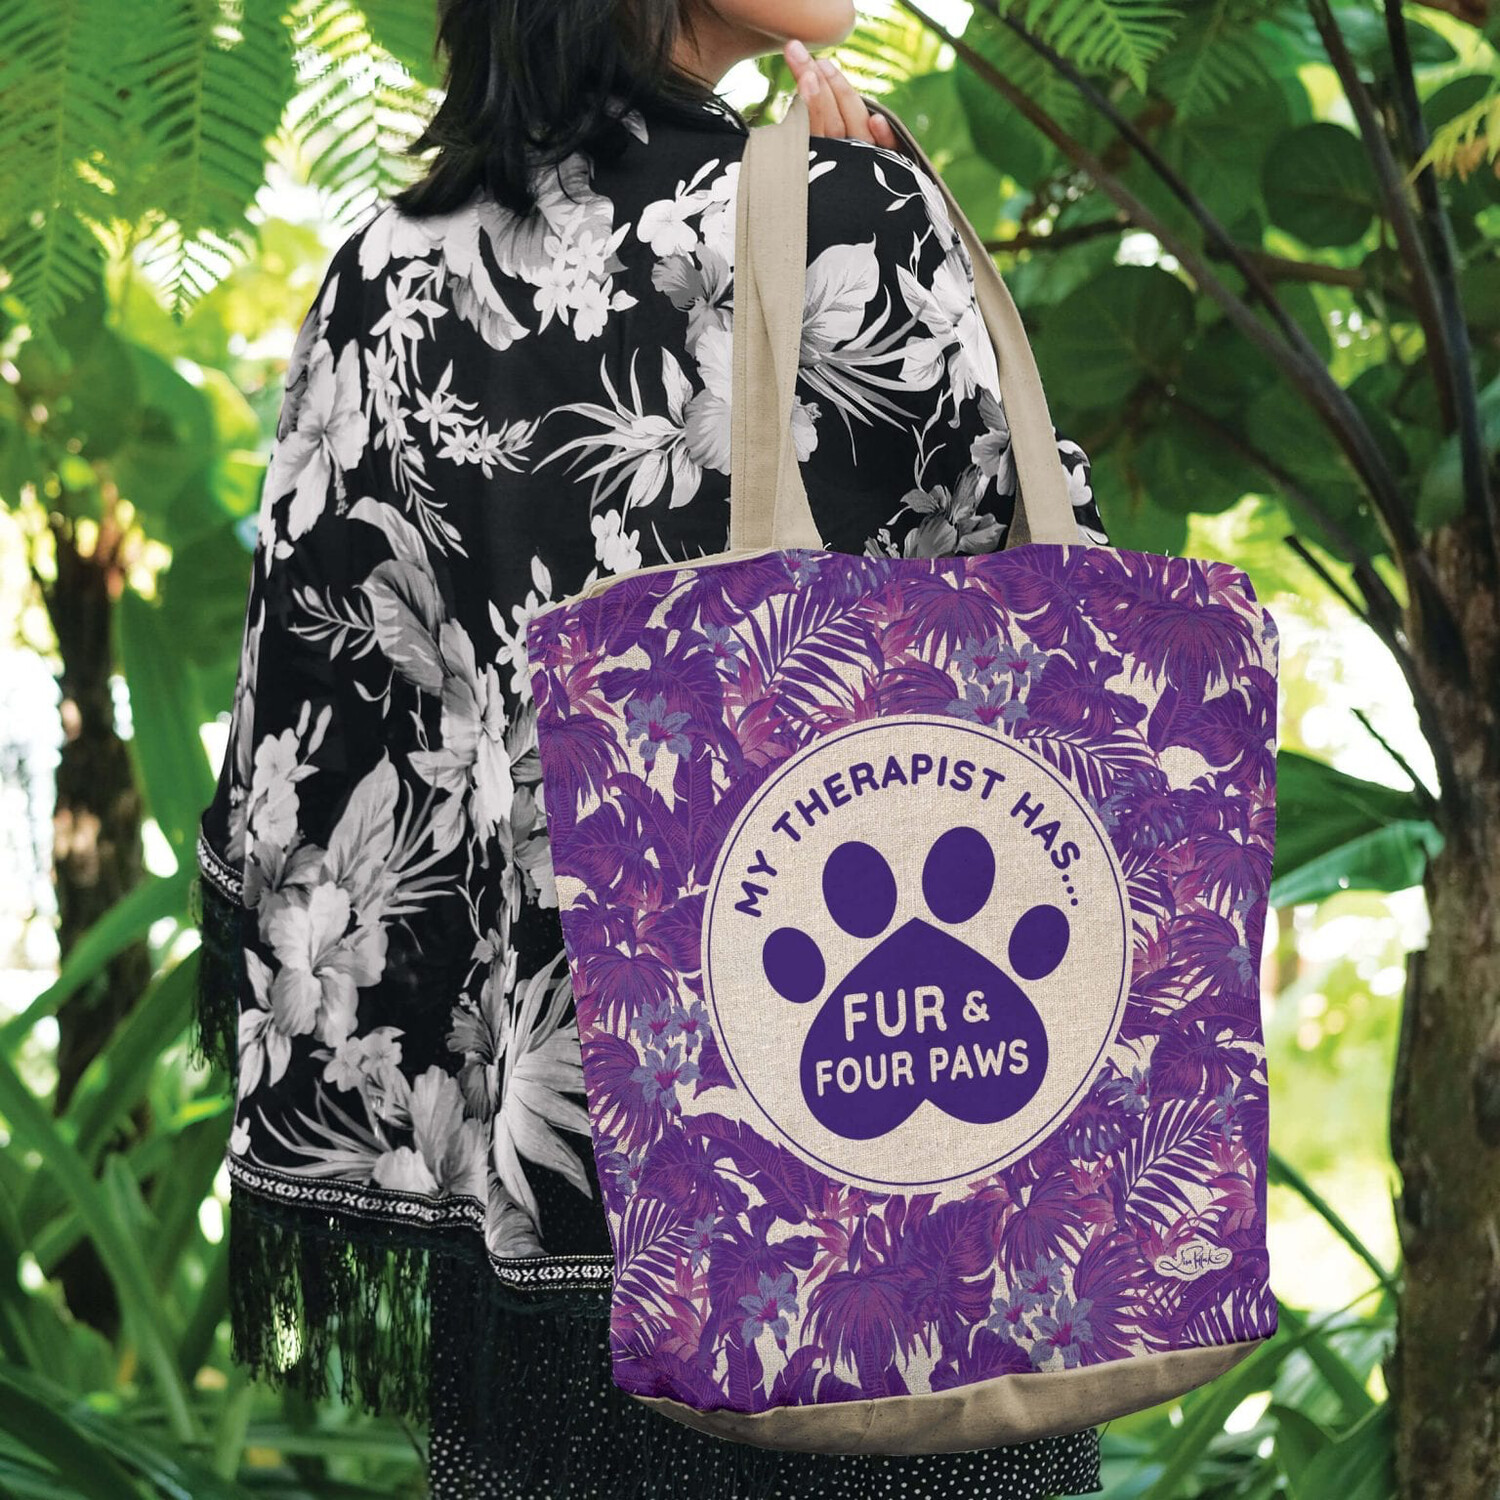 Lisa Pollock Linen/Poly Shopping Tote - My Therapist Has.... Fur & Four Paws